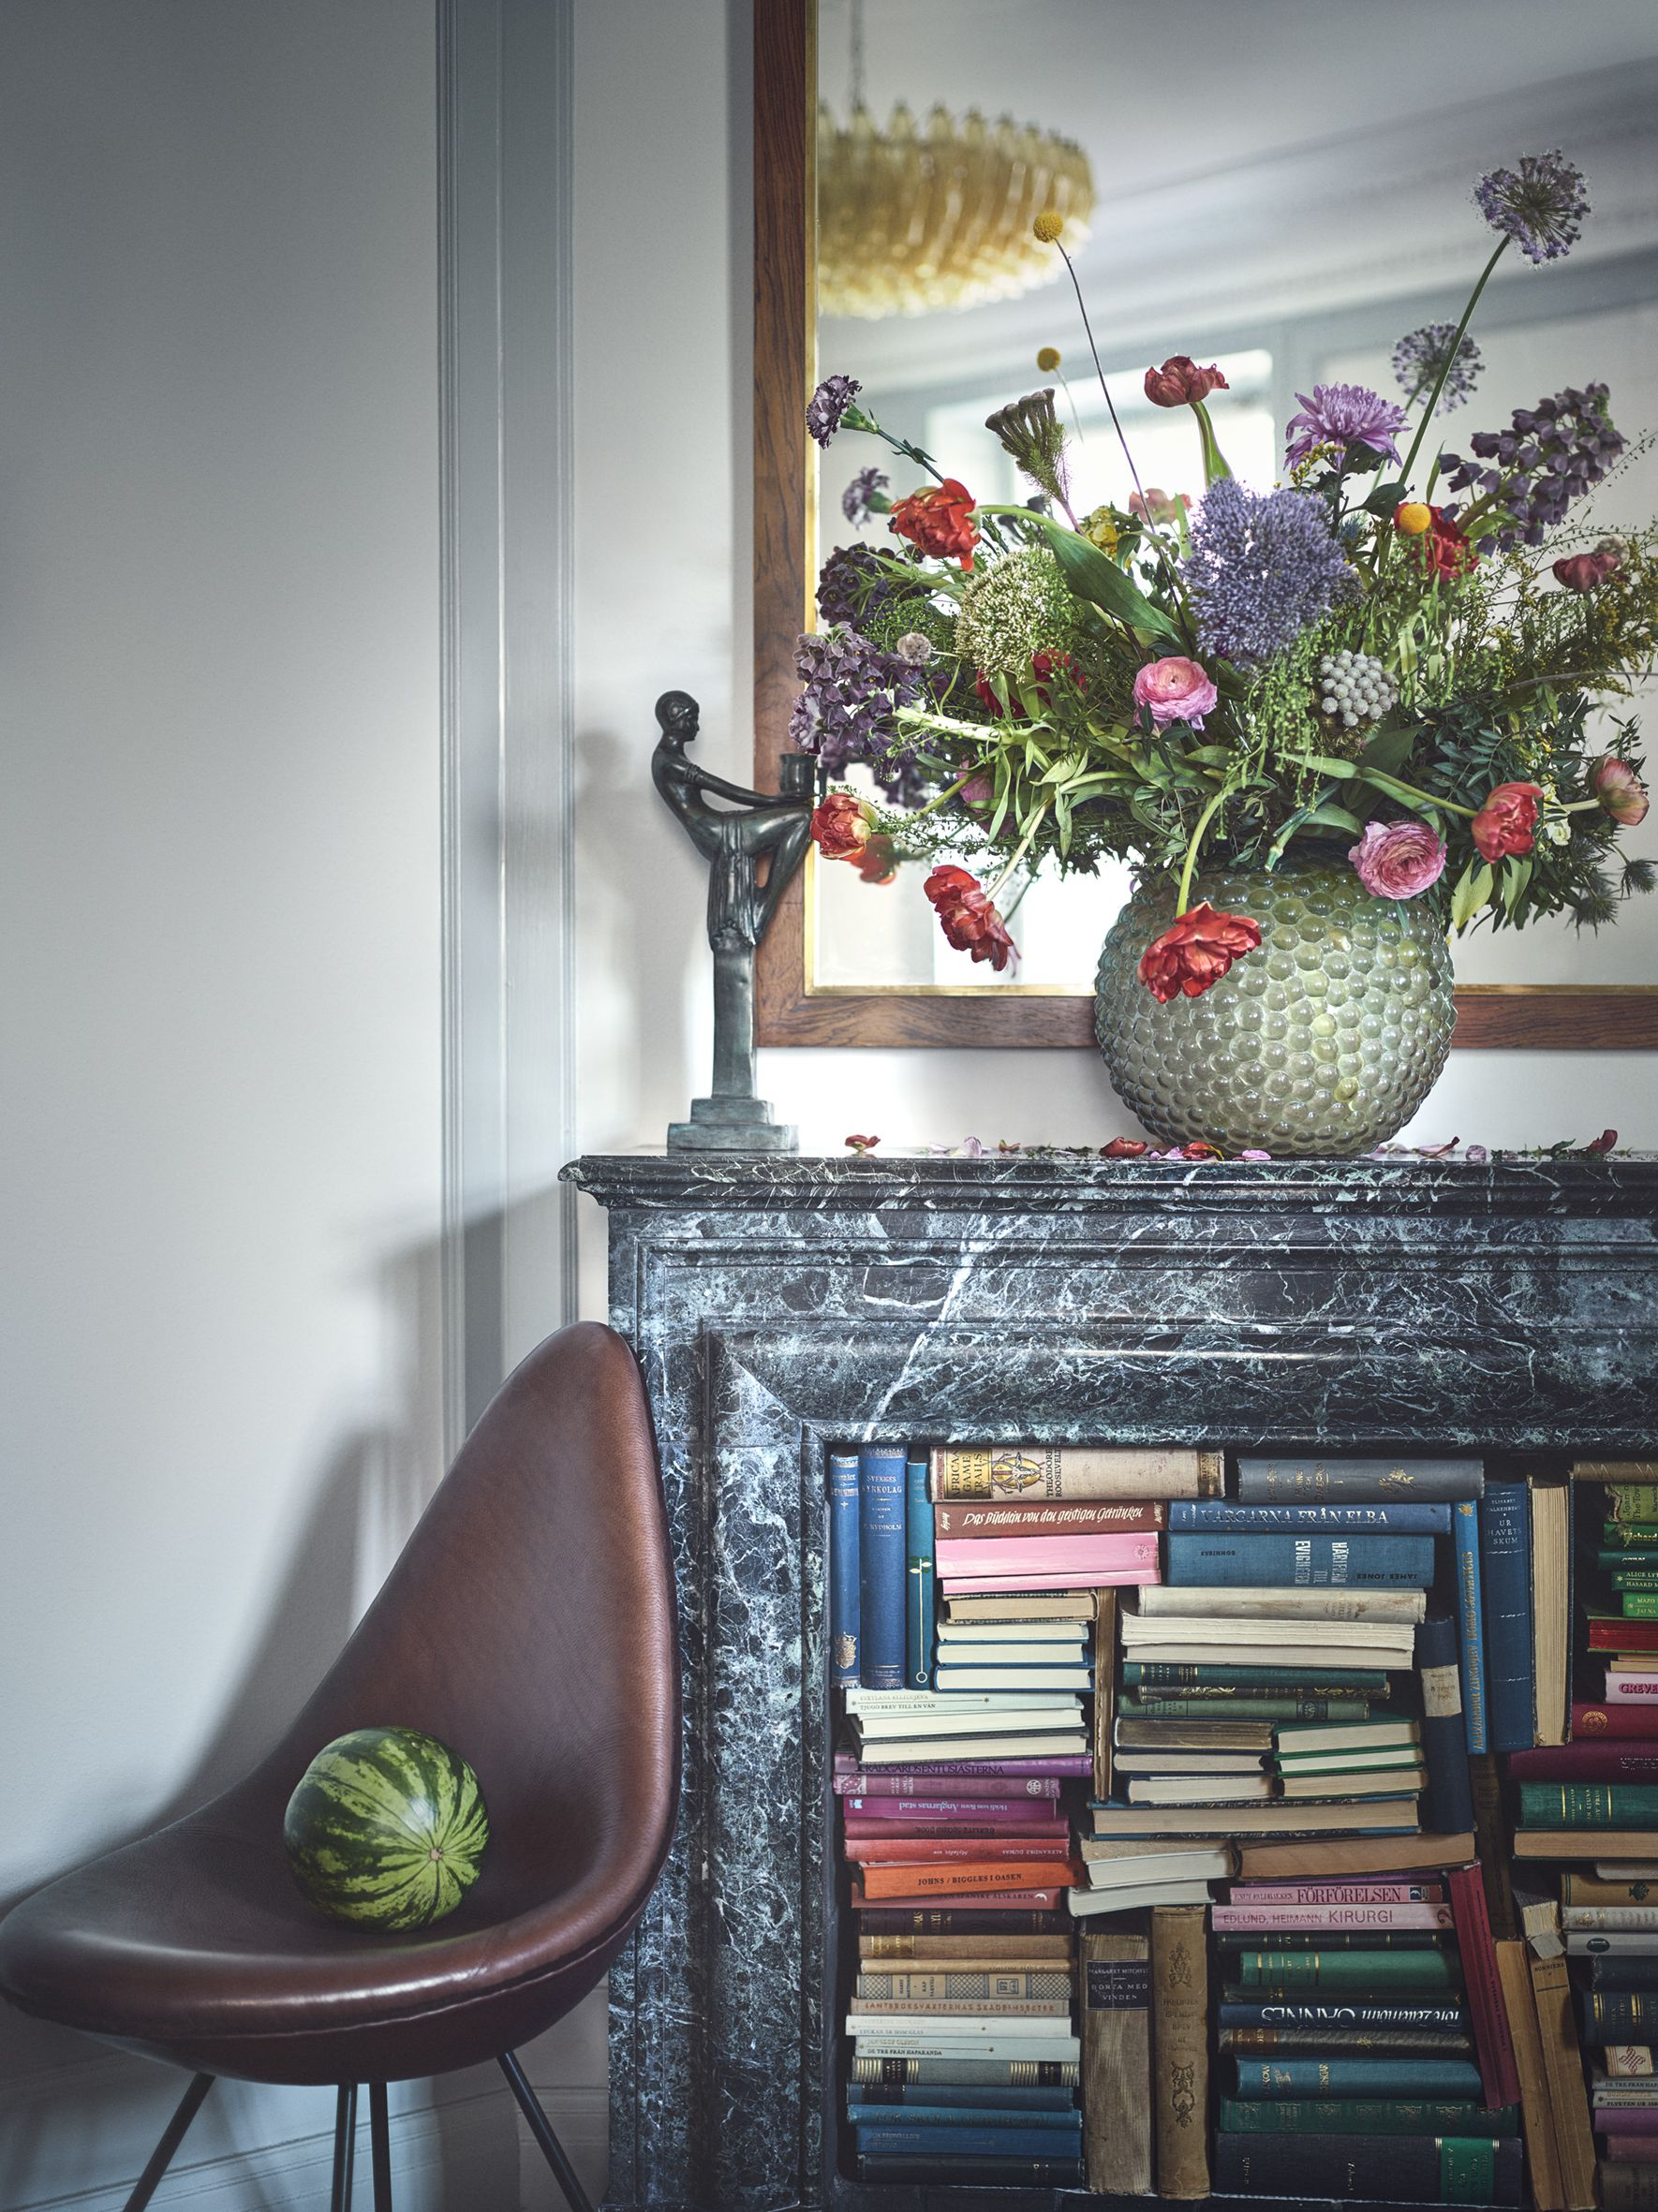 Pin by wildviolet on Design: Booked | Colourful living ...